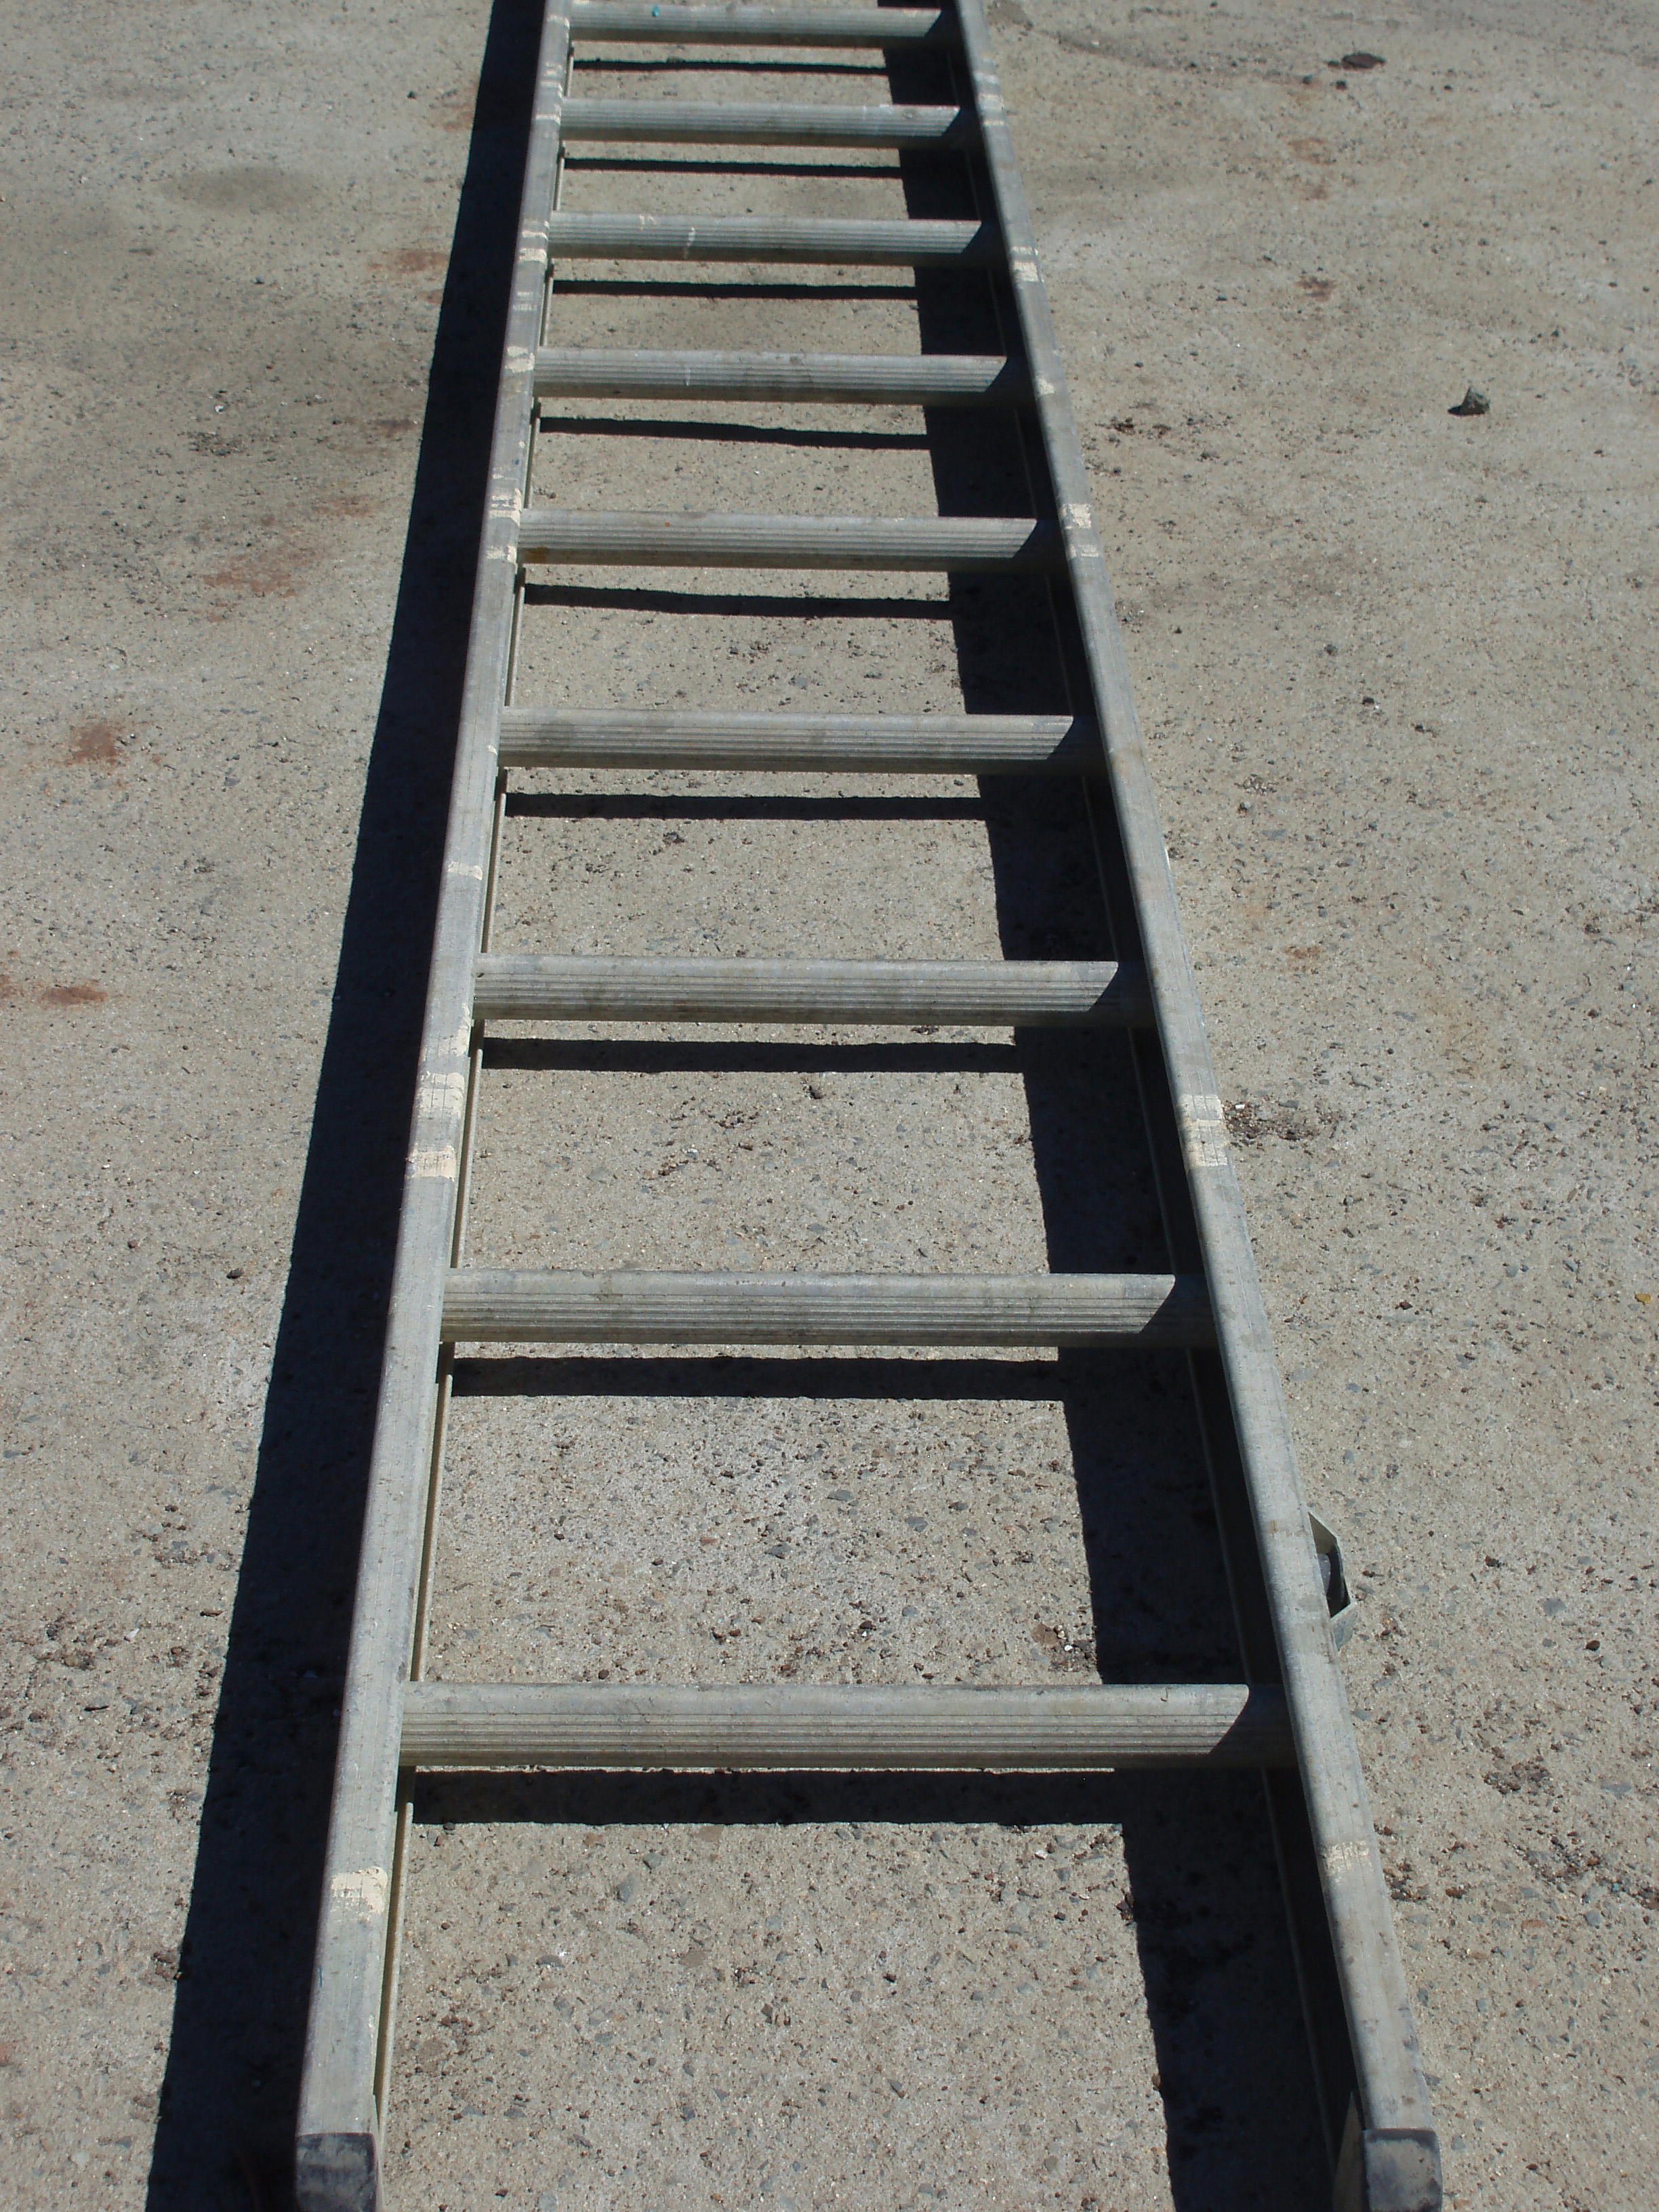 a dirty aluminum ladder laying on the ground